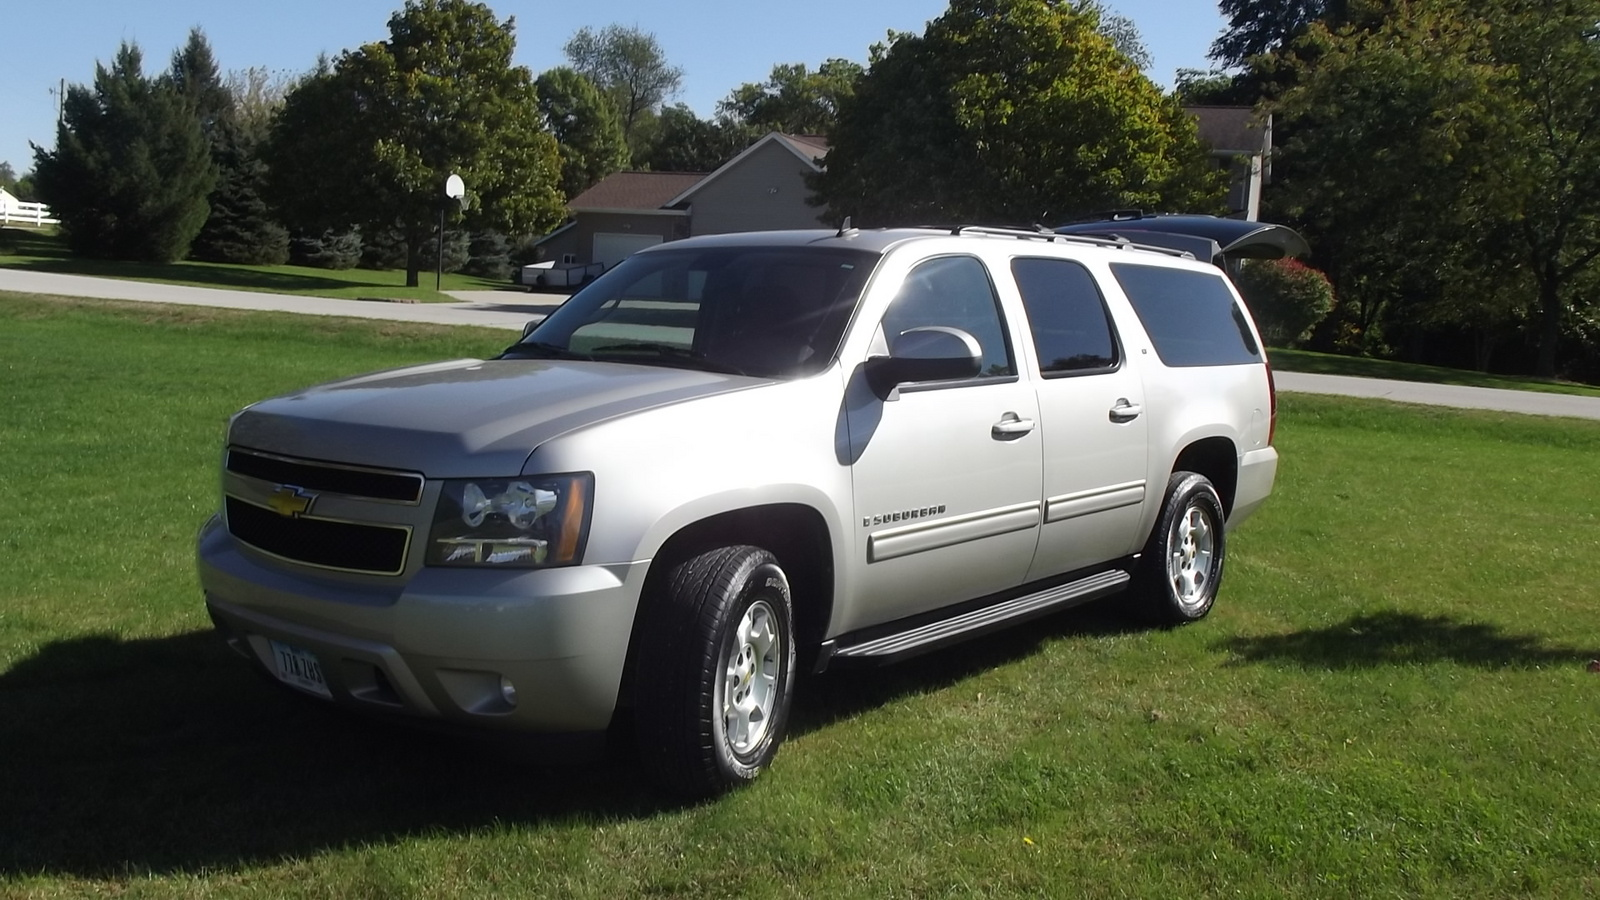 2013 chevrolet suburban lt 2500 4wd for sale page 2 cargurus autos post. Black Bedroom Furniture Sets. Home Design Ideas